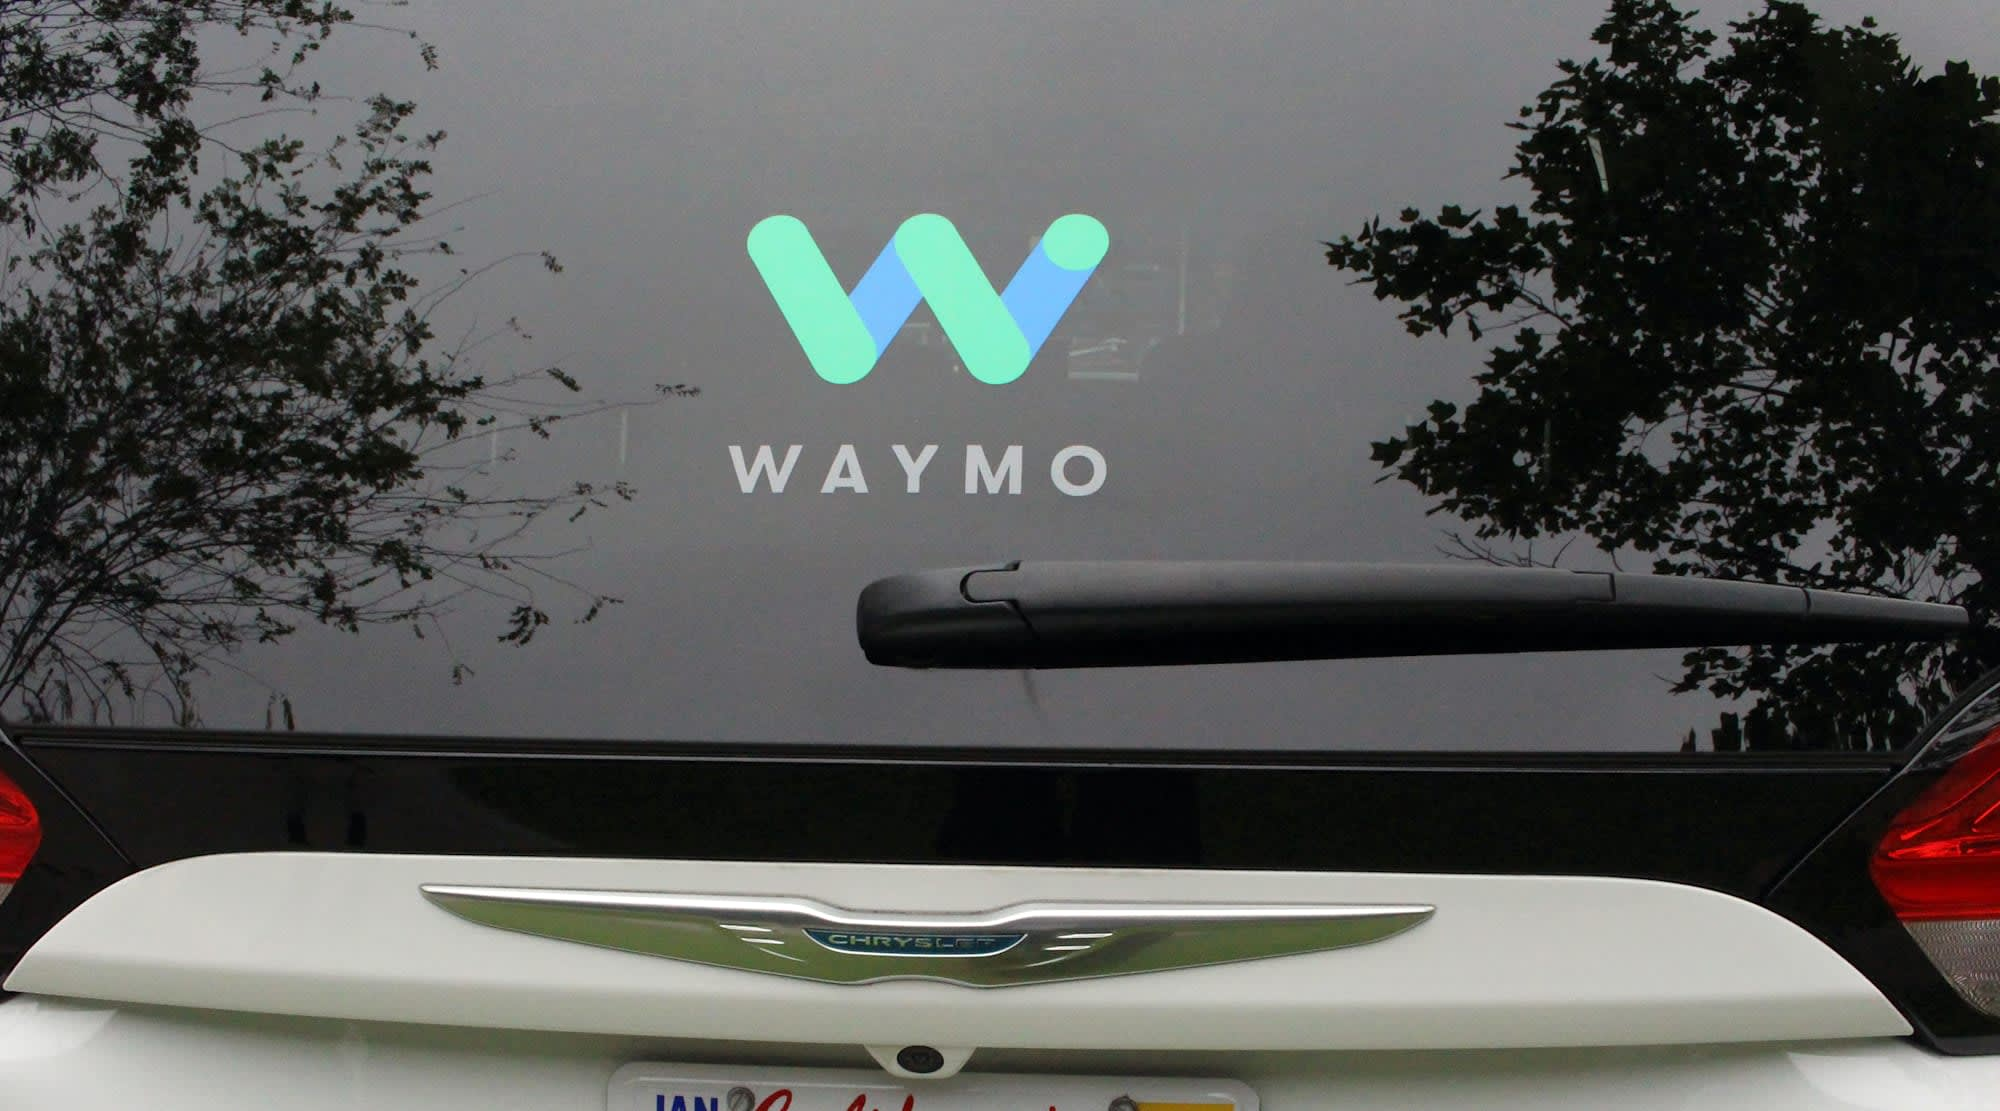 Waymo is rain-testing its self-driving cars in Florida